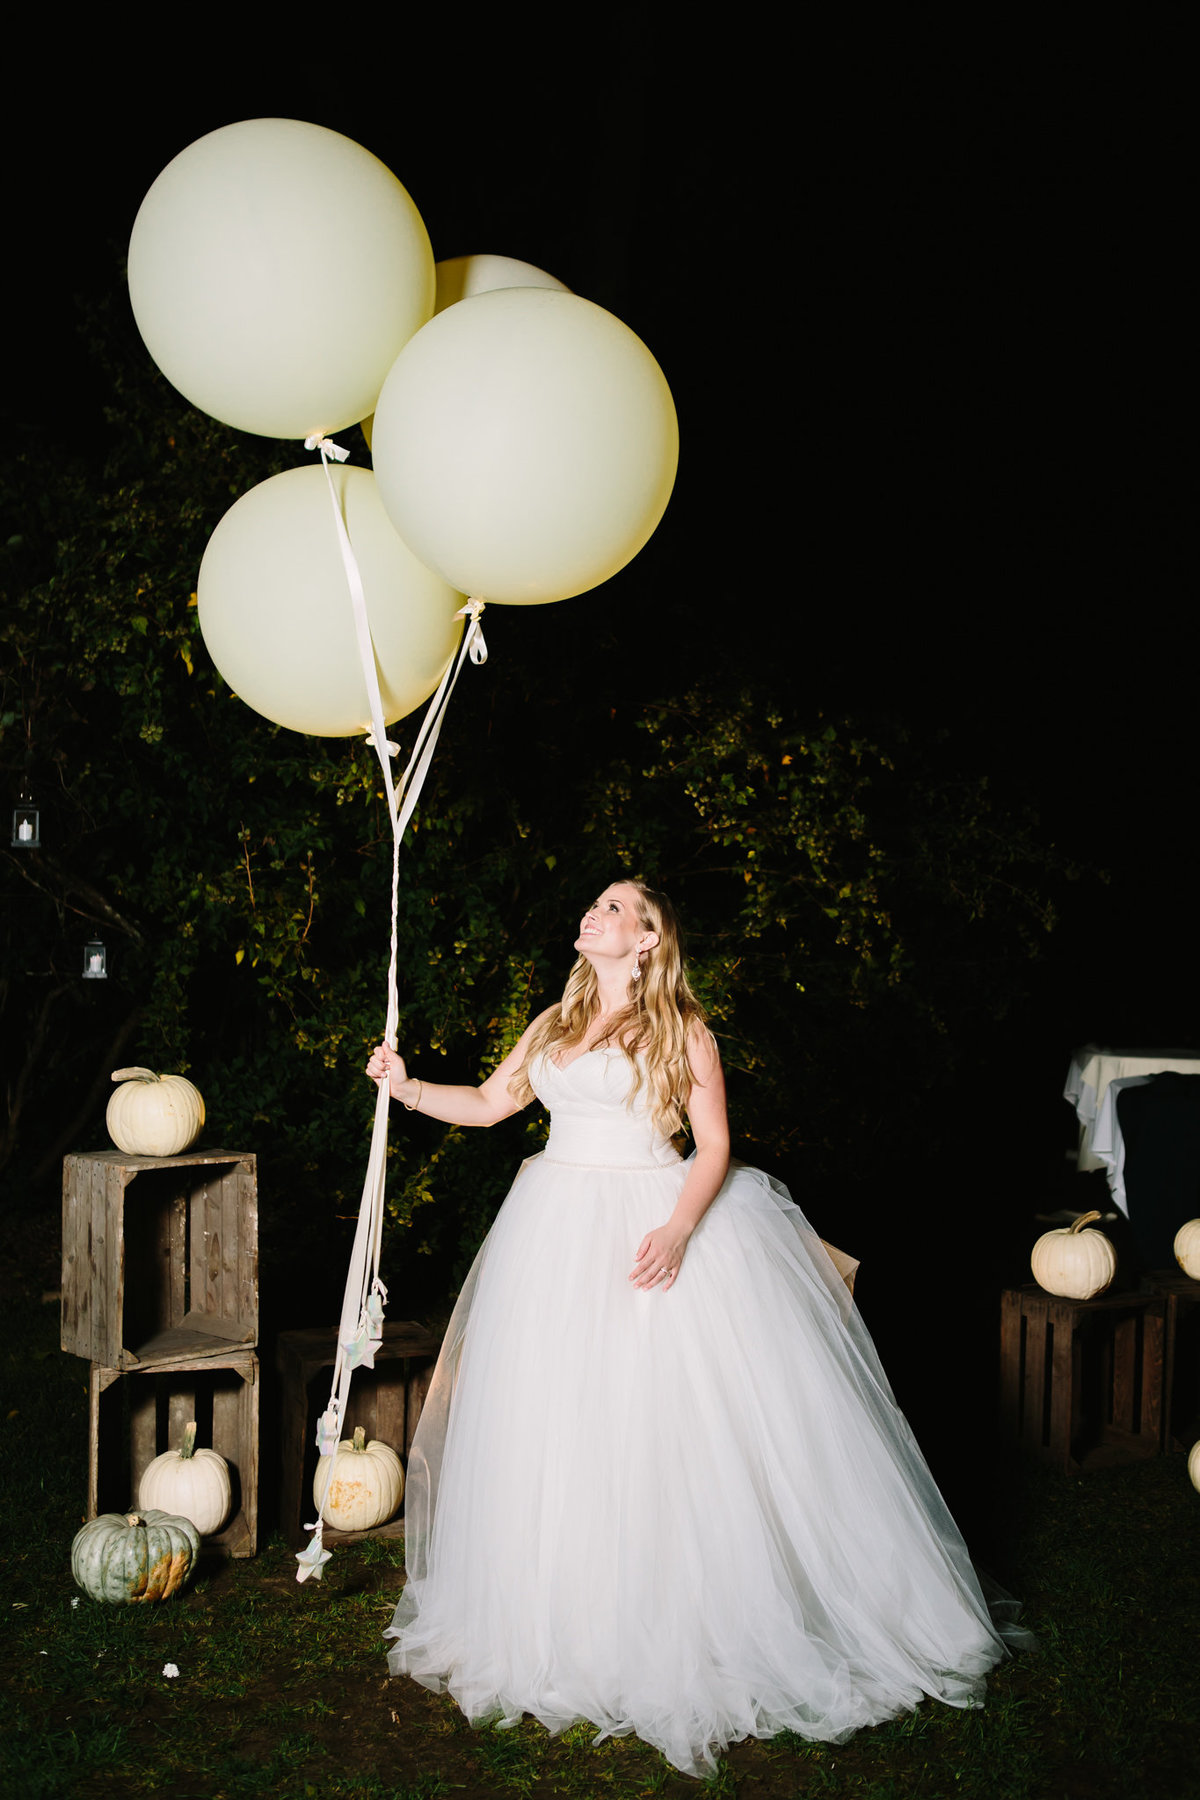 BHULLPHOTOGRAPHY_crabtreekittlehousewedding-73